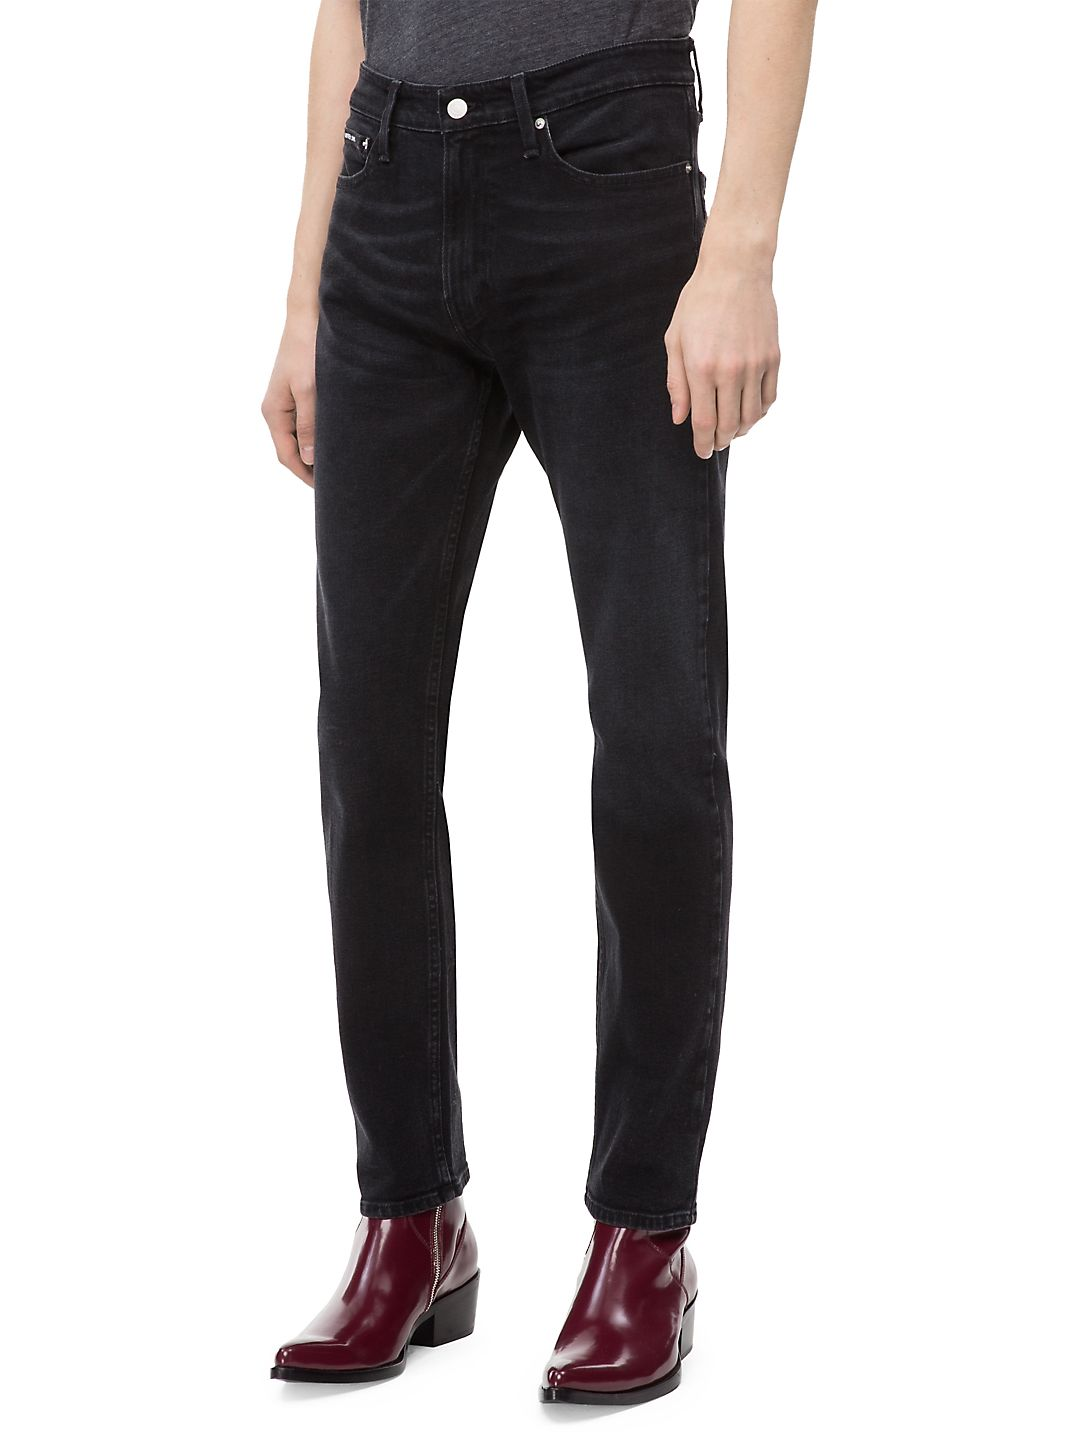 056 Athletic Tapered Fit Jeans